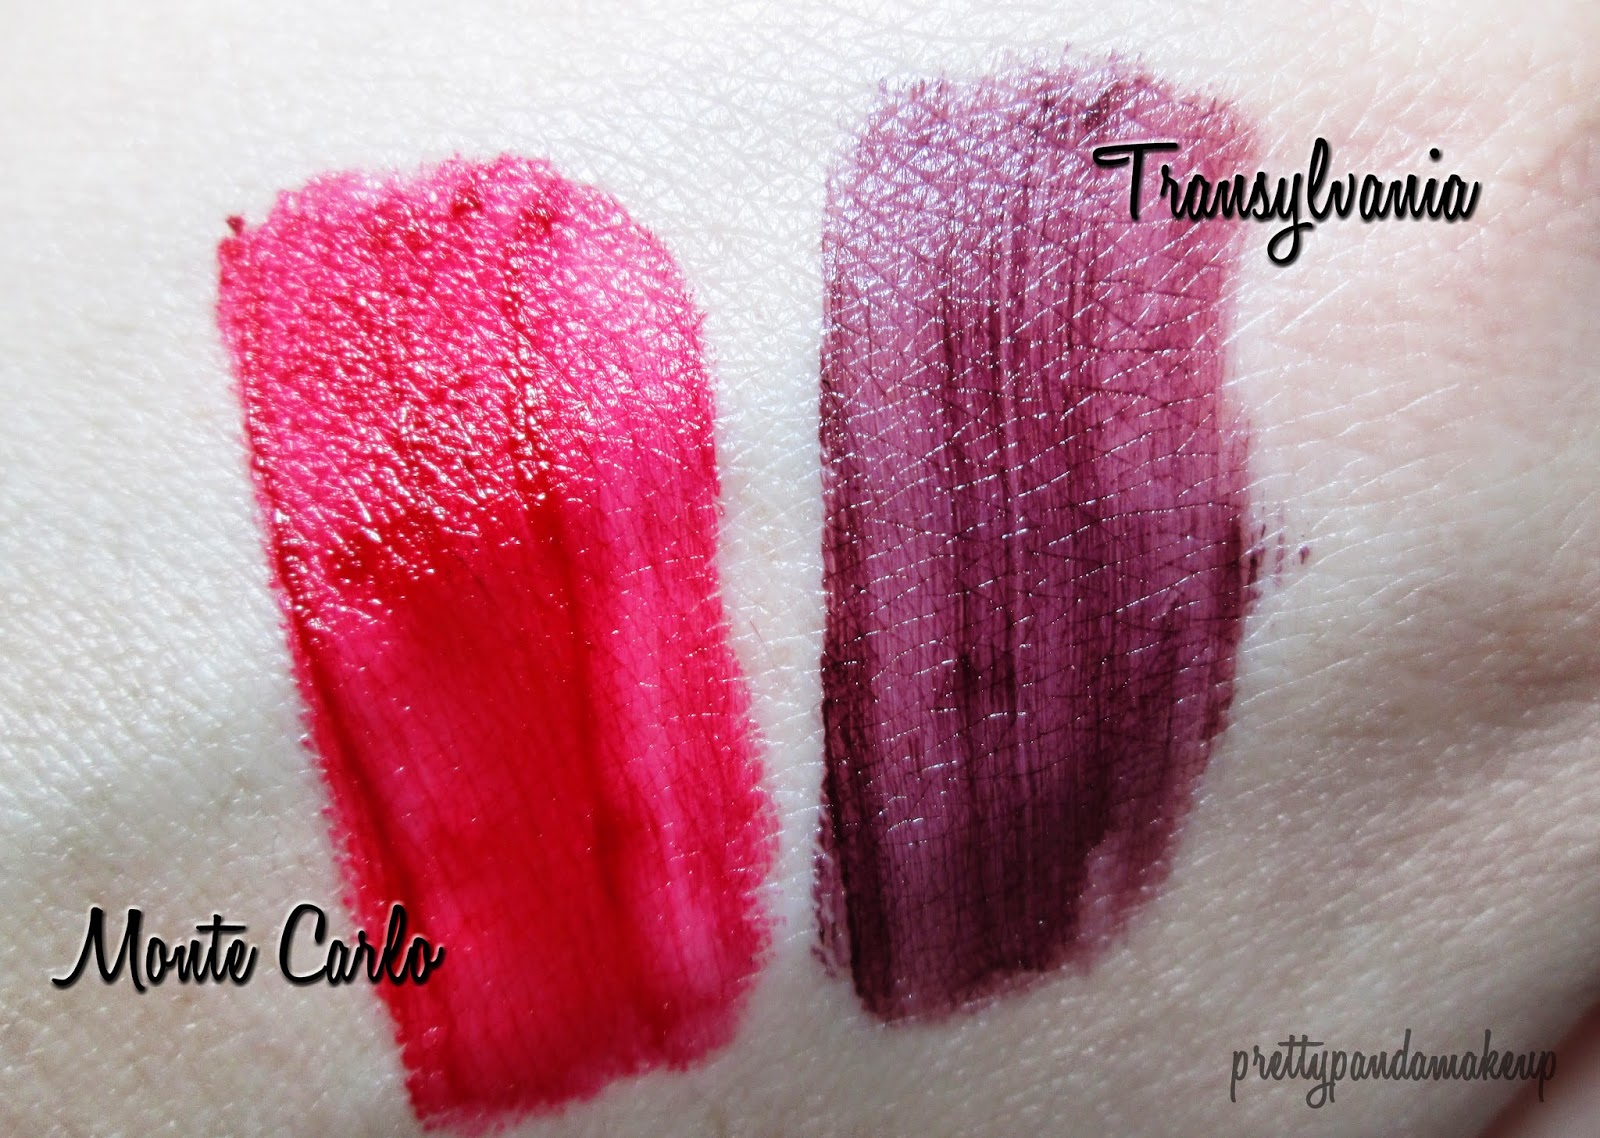 NYX soft matte lip cream in Transylvania and Monte Carlo swatches and review